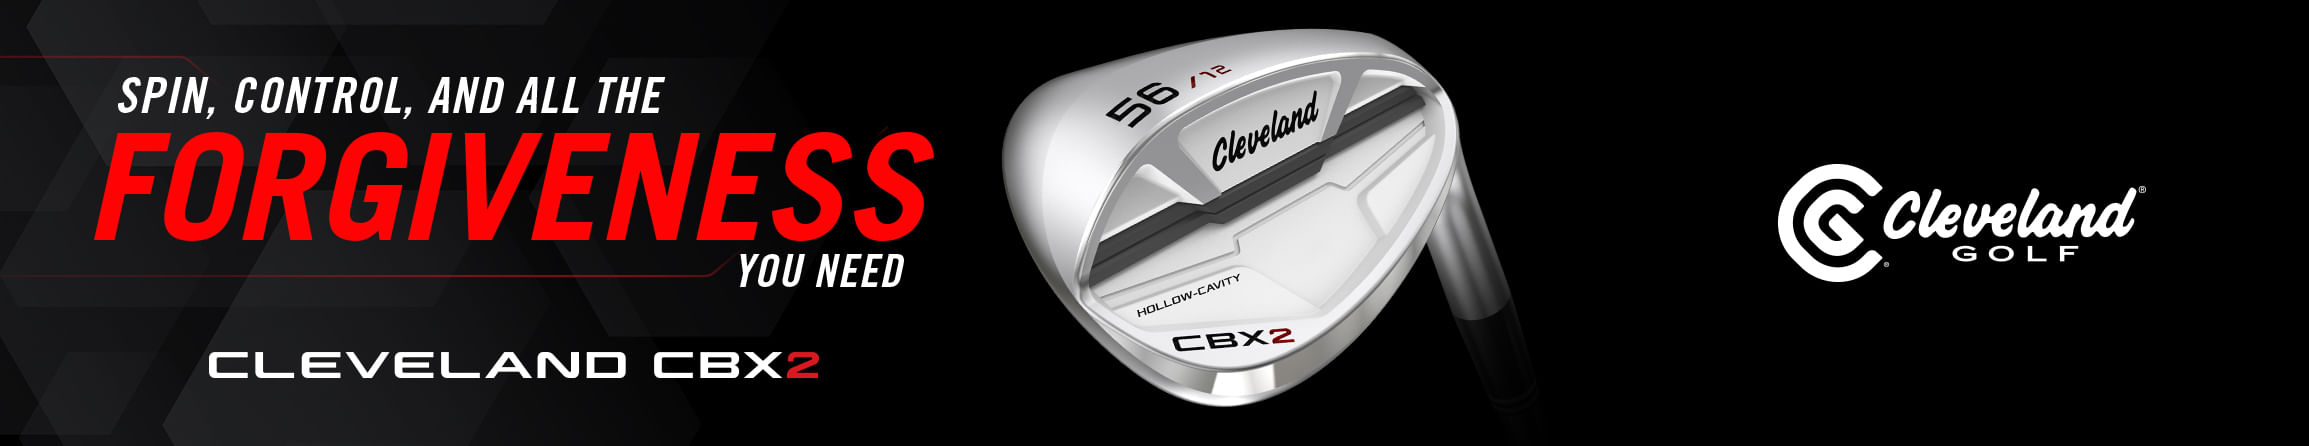 Ceveland CBX2 wedges